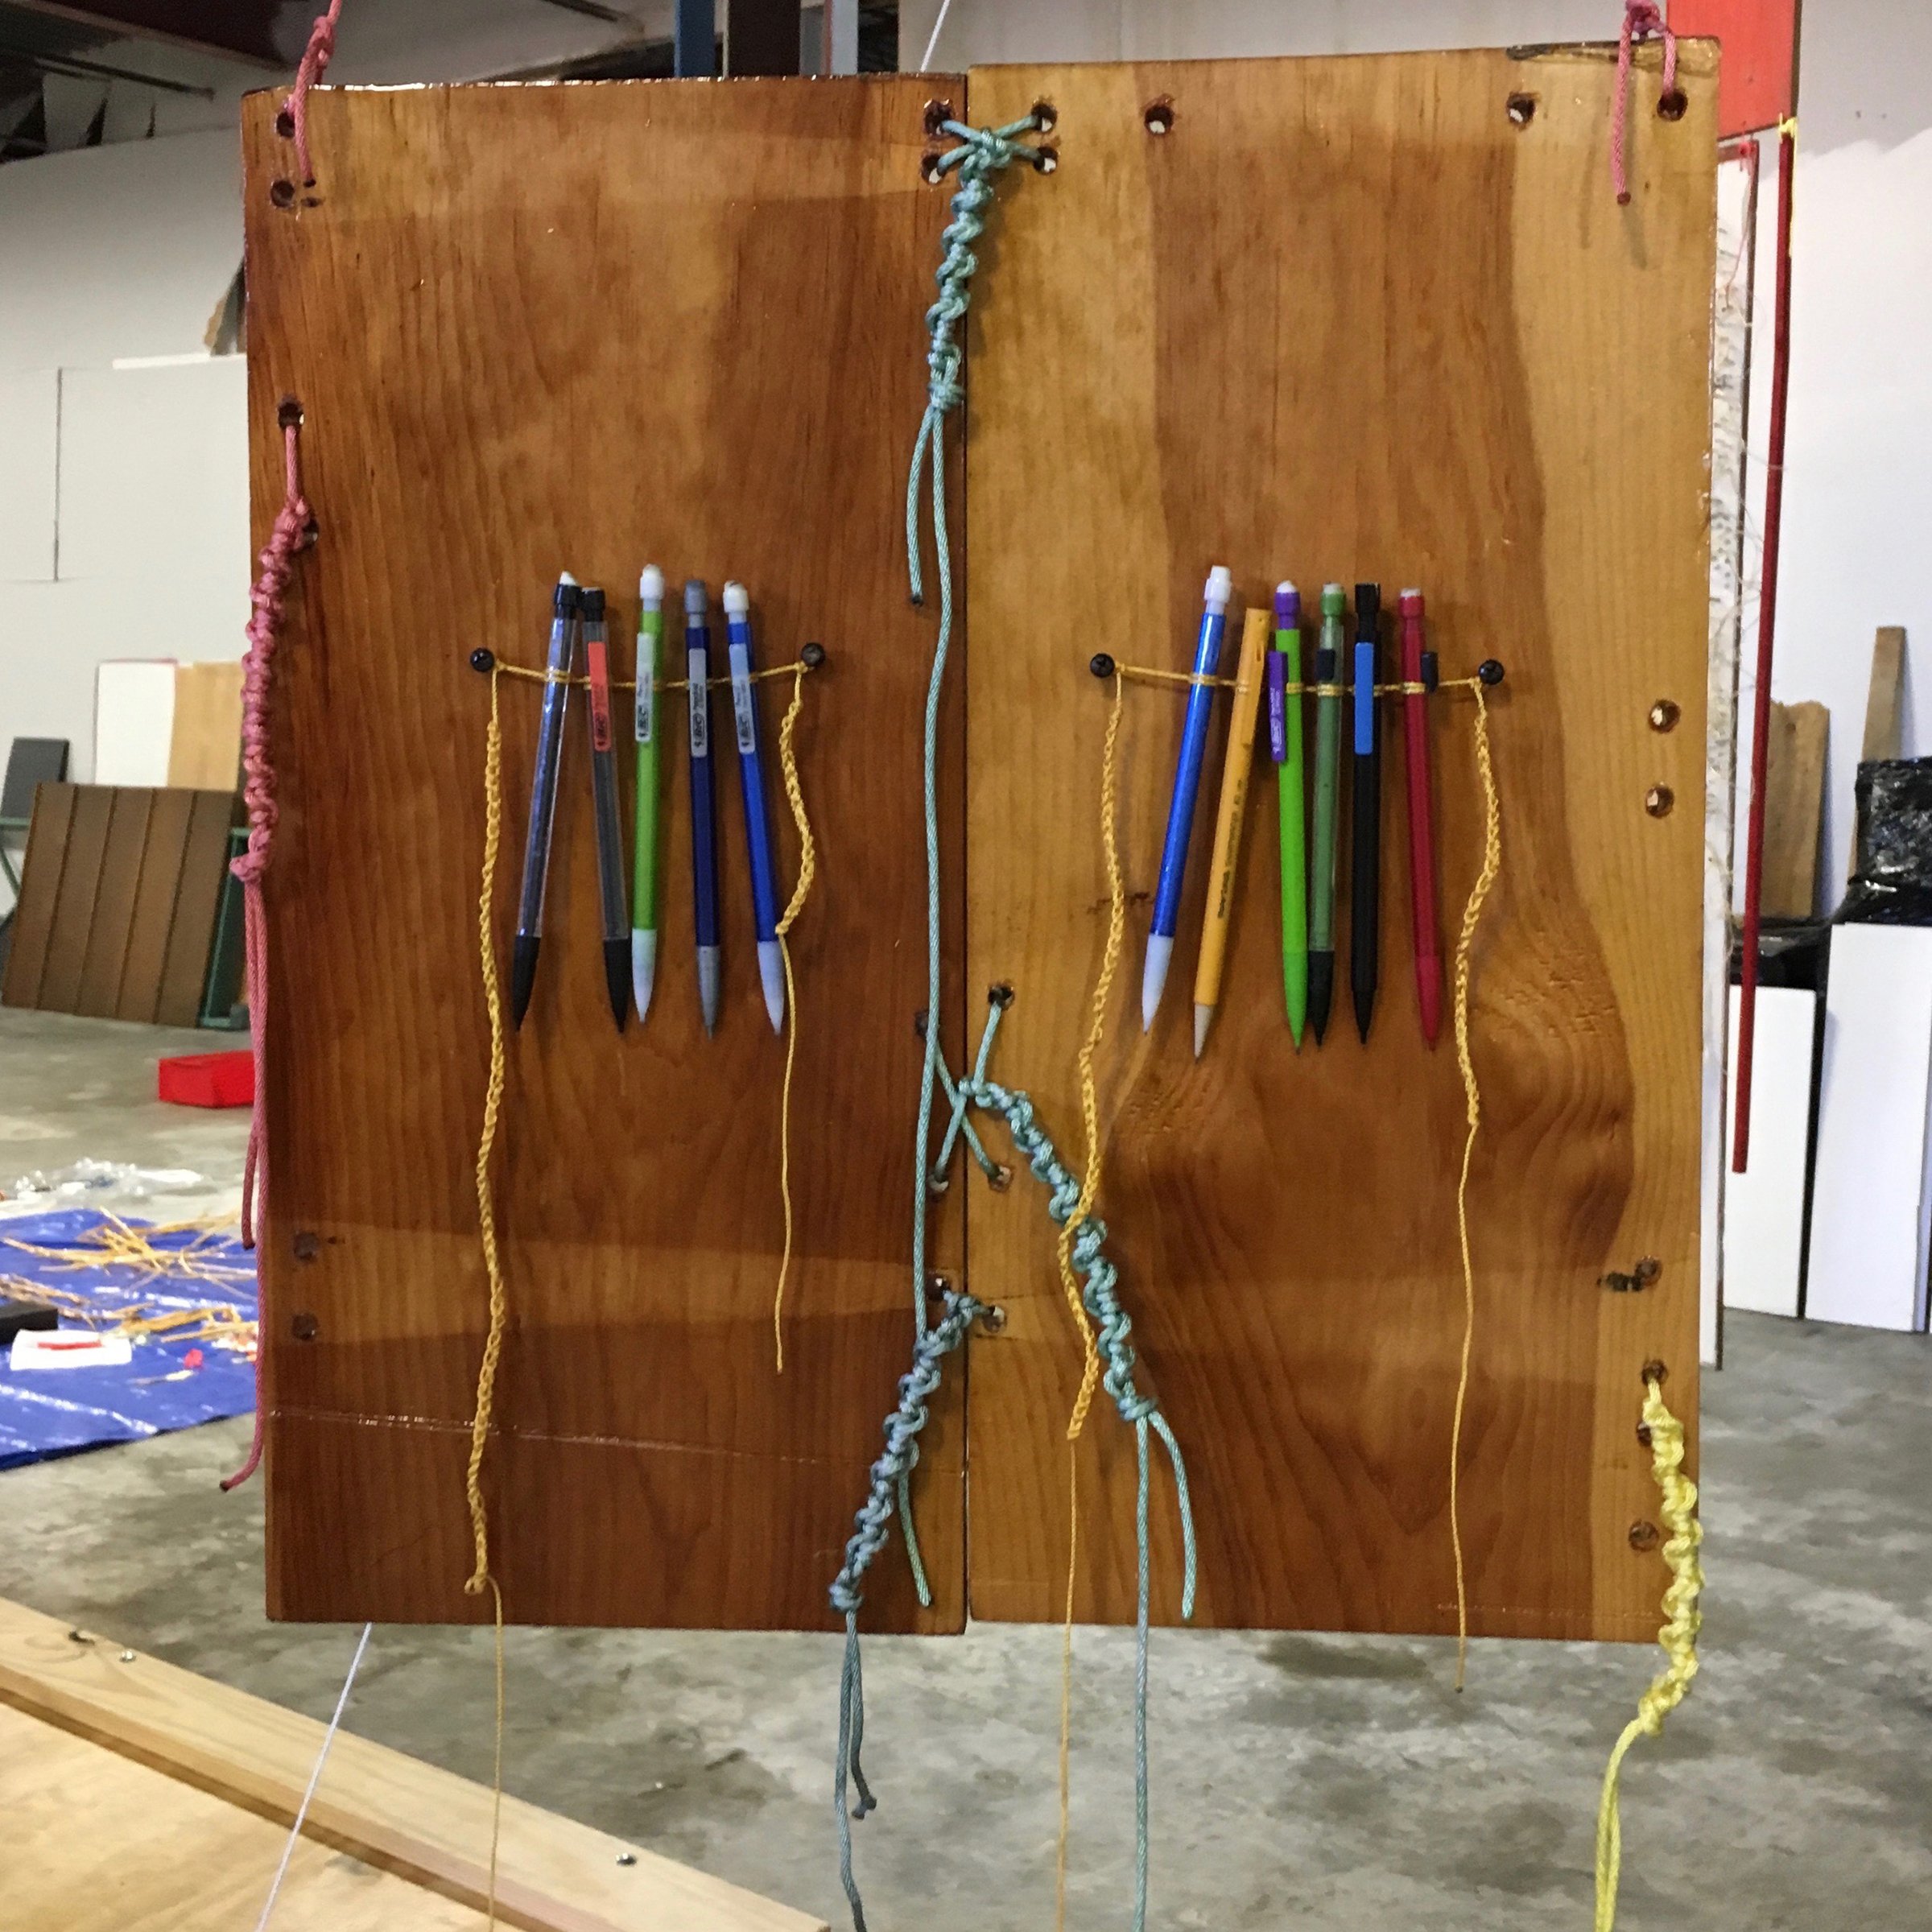 "#Granary Door - Storehouse of Knowledge   48""x18.5""x2""; found wood panels, found pencils, string, rope, dye, varnish  Exhibited 2018   Creative Explorations in Mixed Media Exhibition   - South Cobb Arts Alliance, Mable Hoouse Arts Cengter, Mableton, GA."